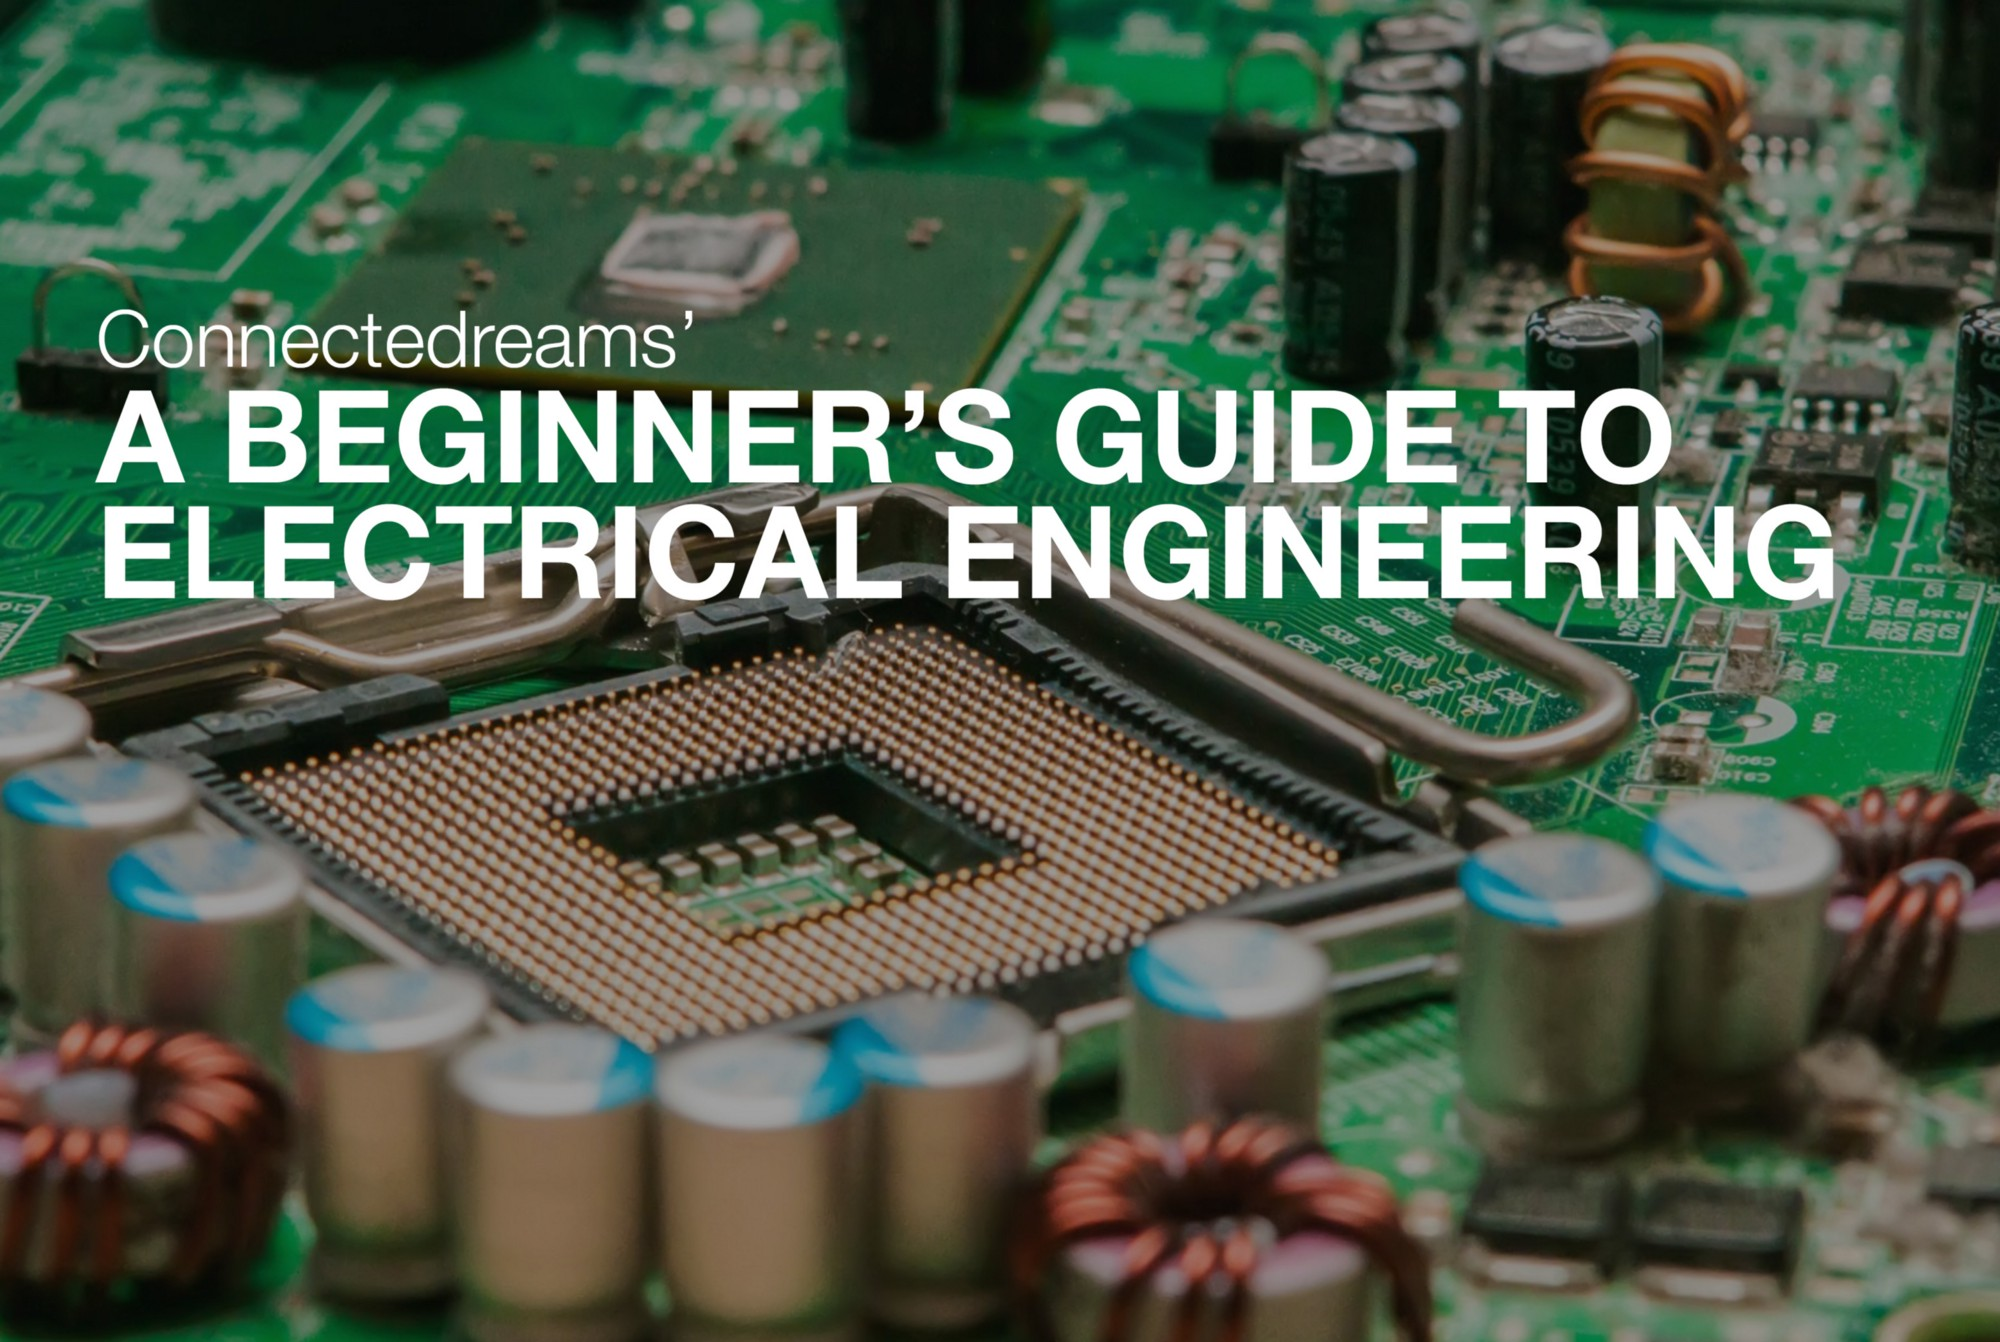 A Beginners Guide To Electrical Engineering Connectedreams Blog Circuit Basics With Your Students And Have Them Build Closed Medium